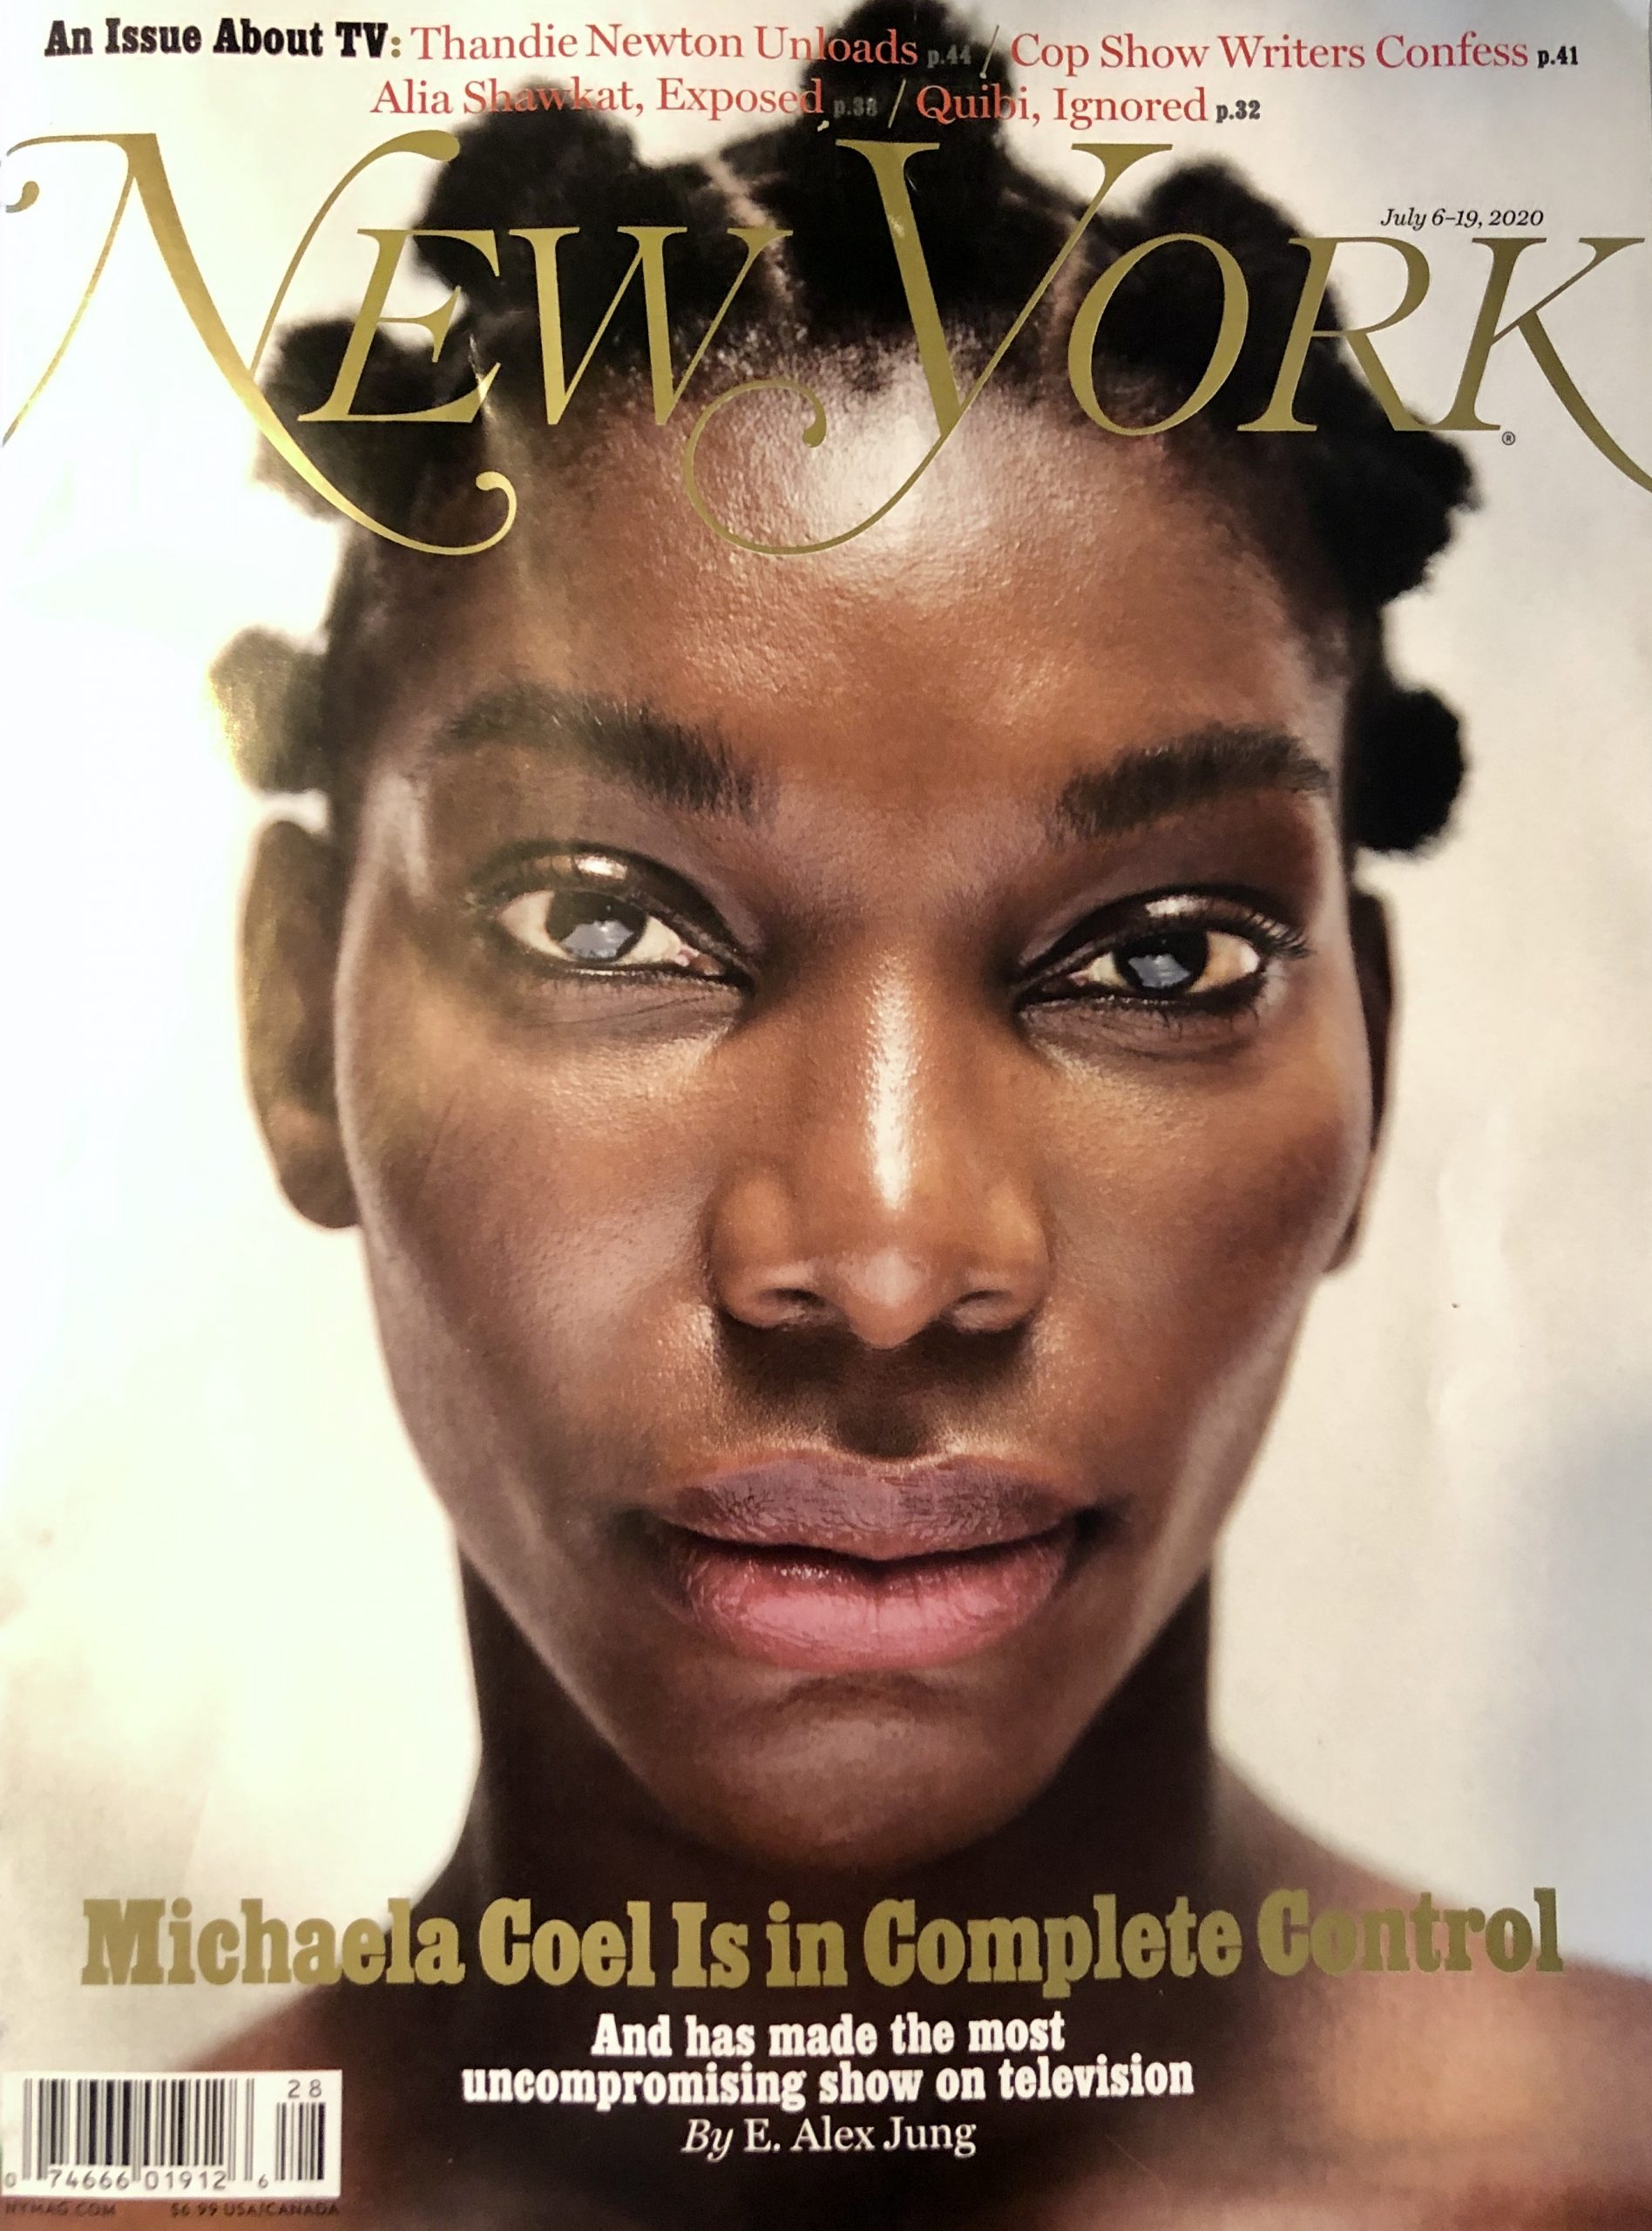 Cover of New York magazine, July 2020